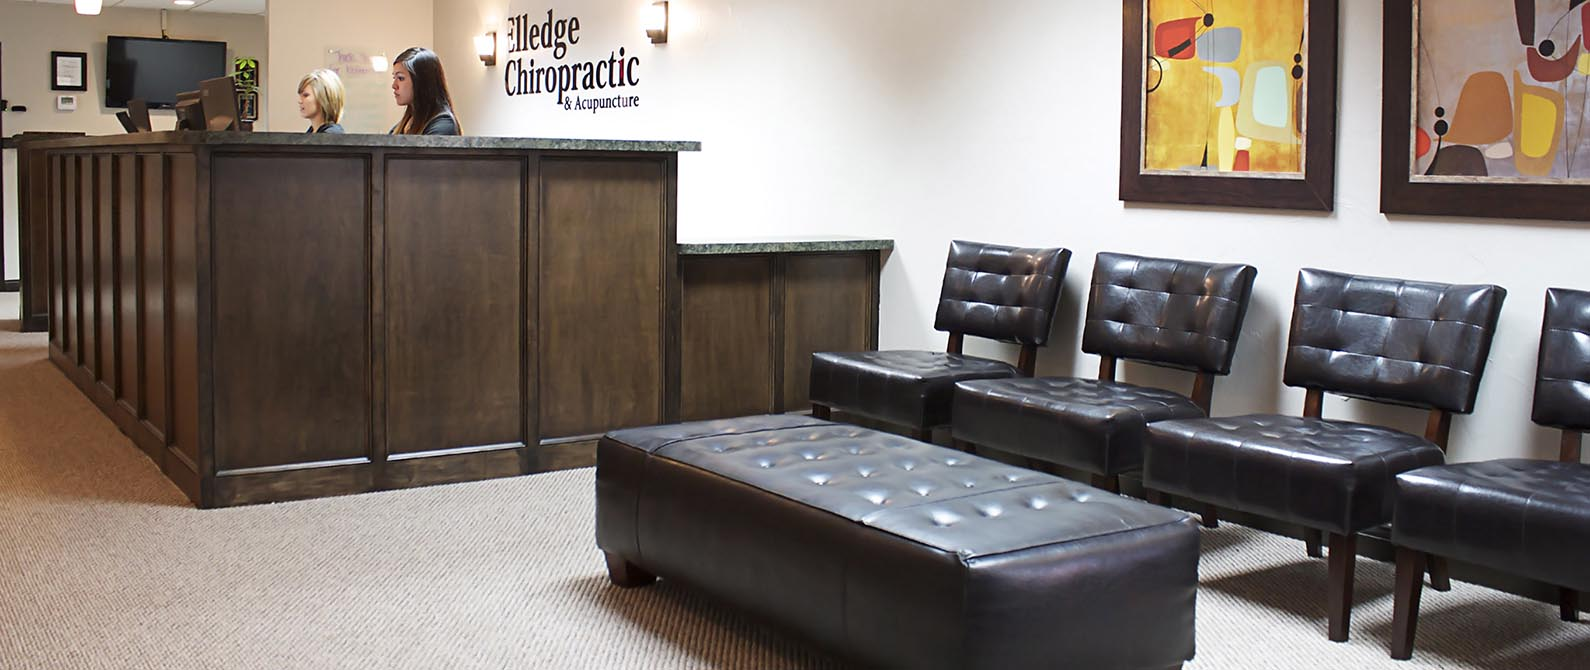 acupuncture okc